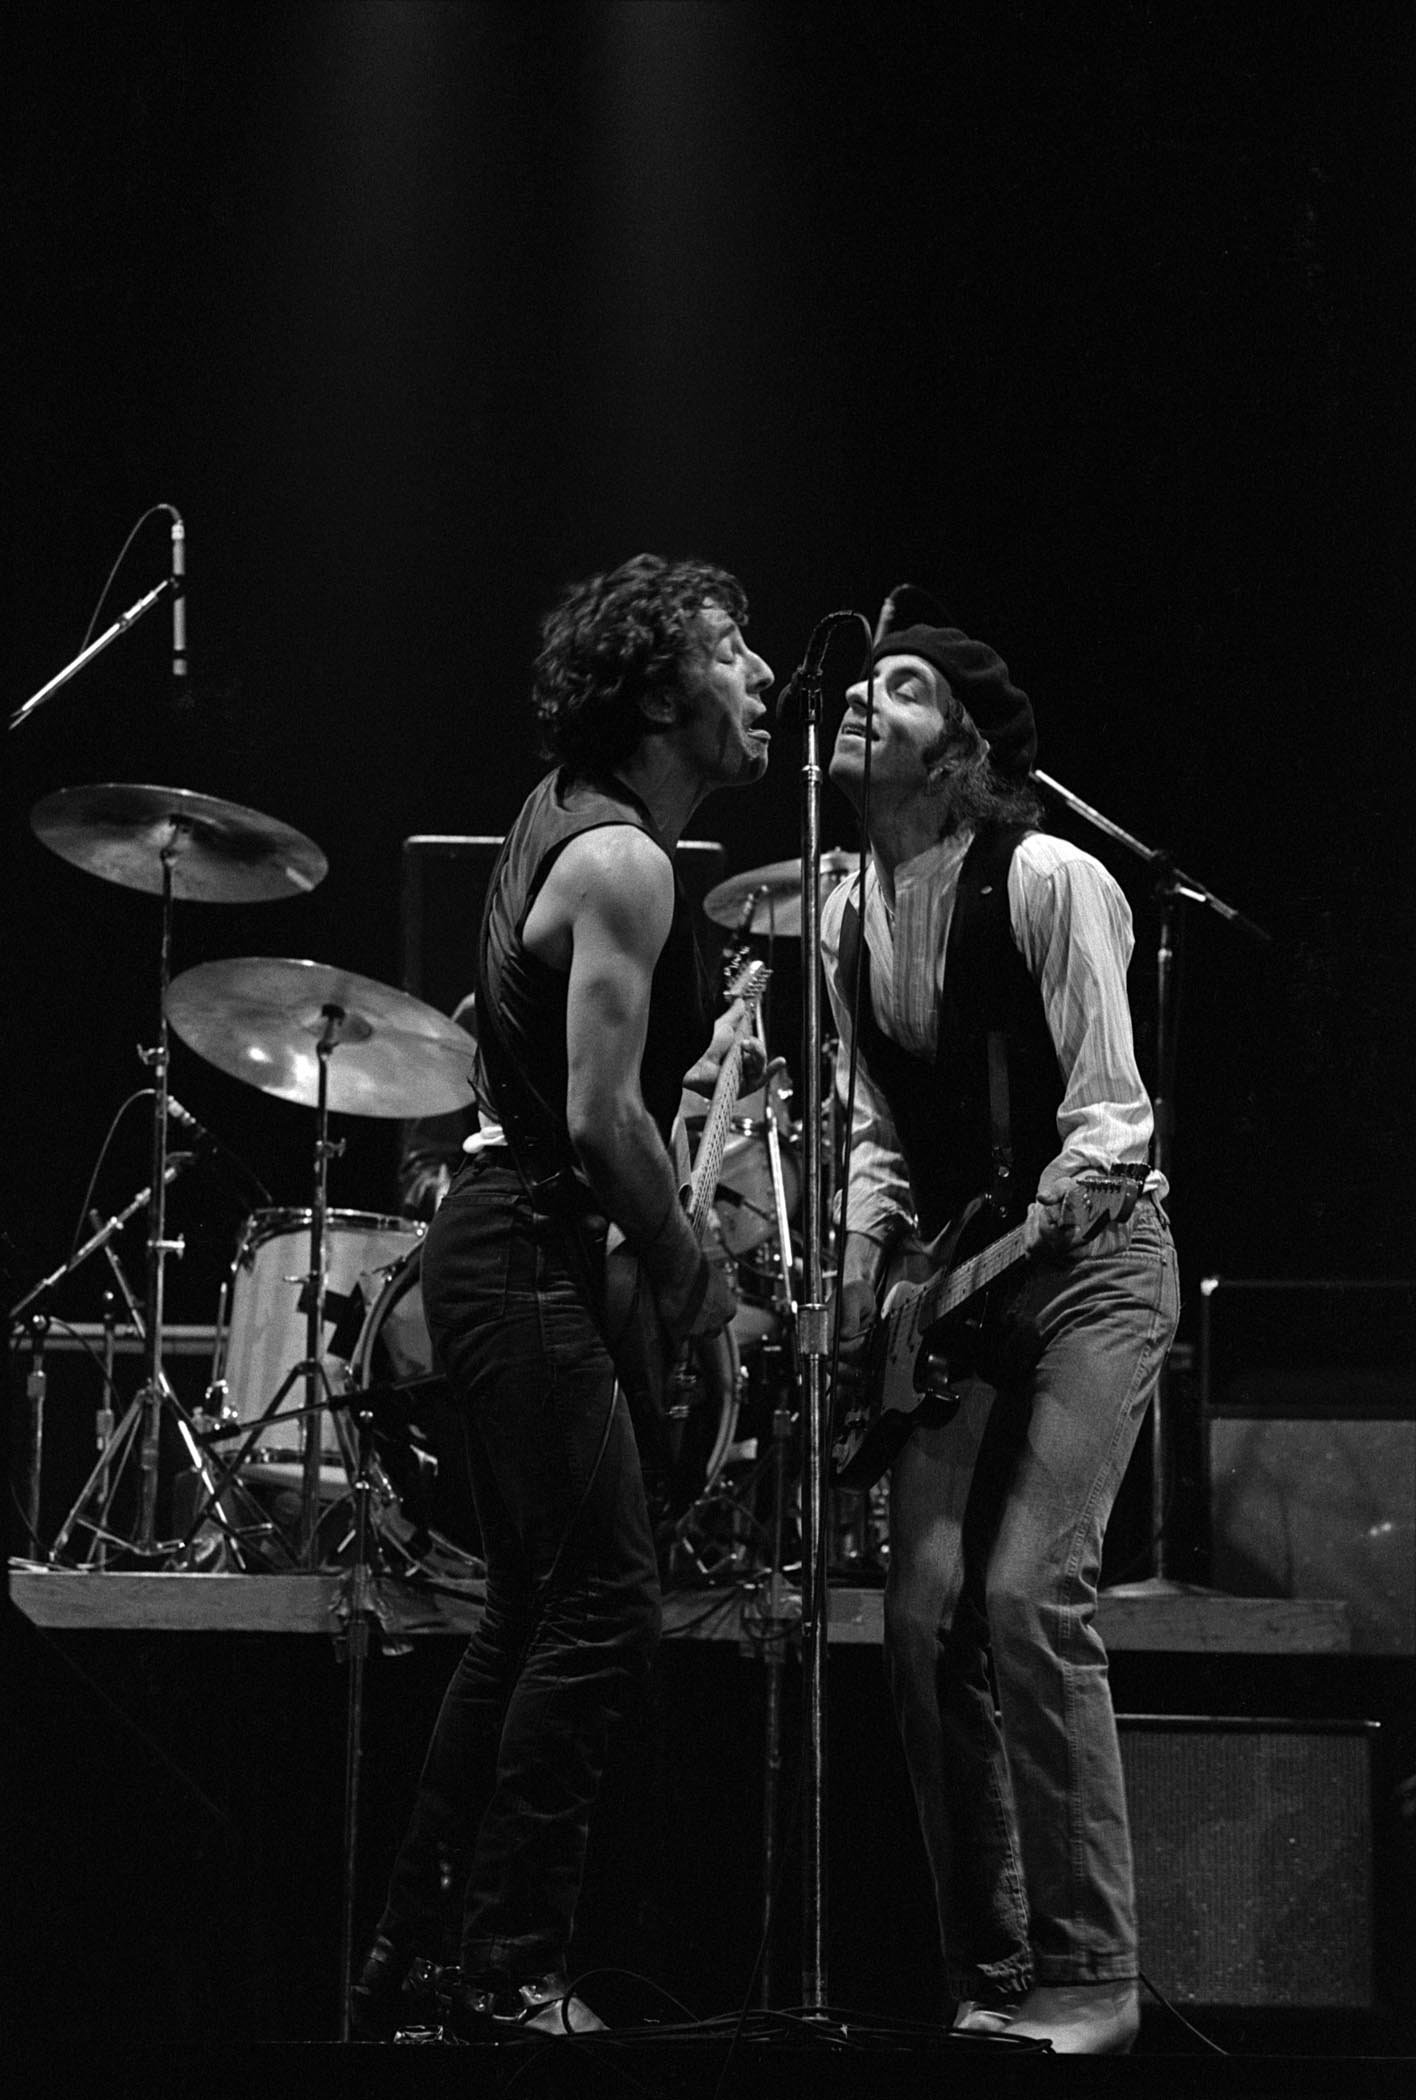 BruceSpringsteen_1979_StPaul_LilStevie2.jpg